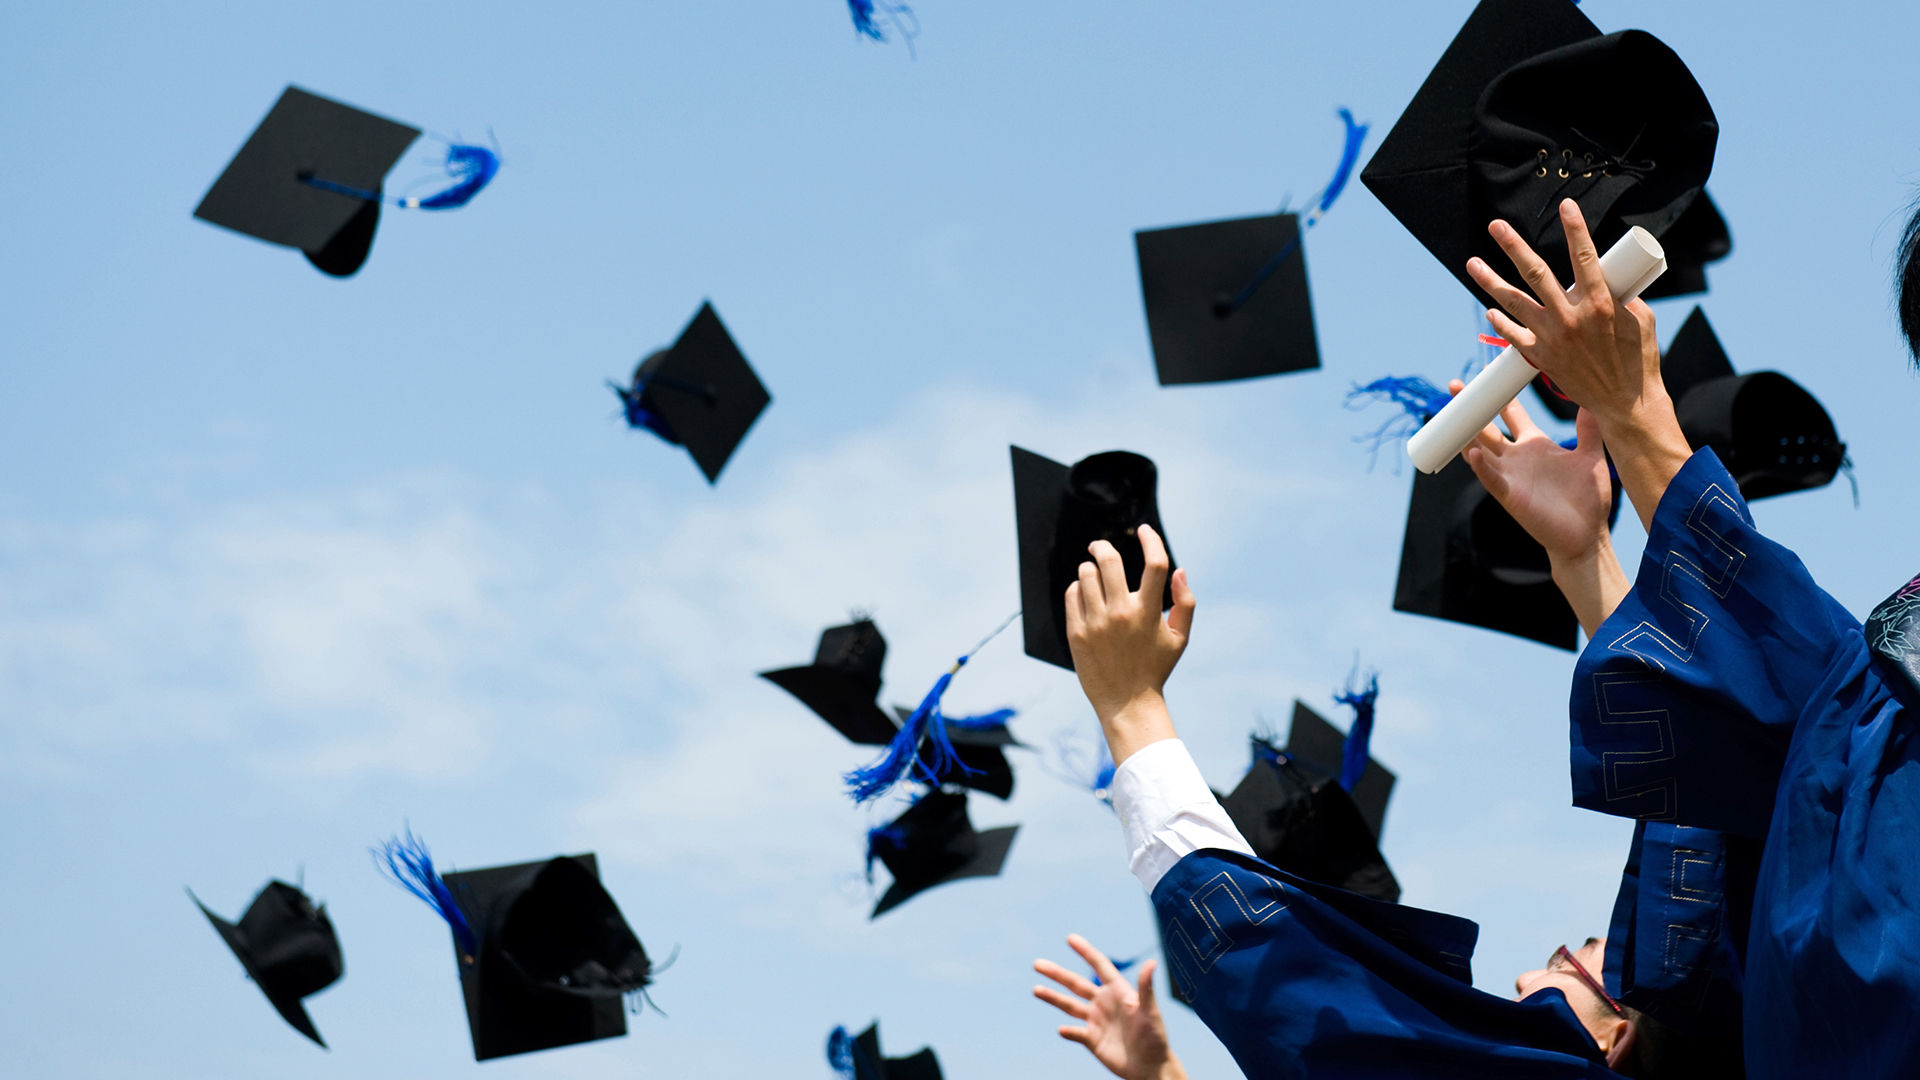 Graduation caps in air | Sheknows.com